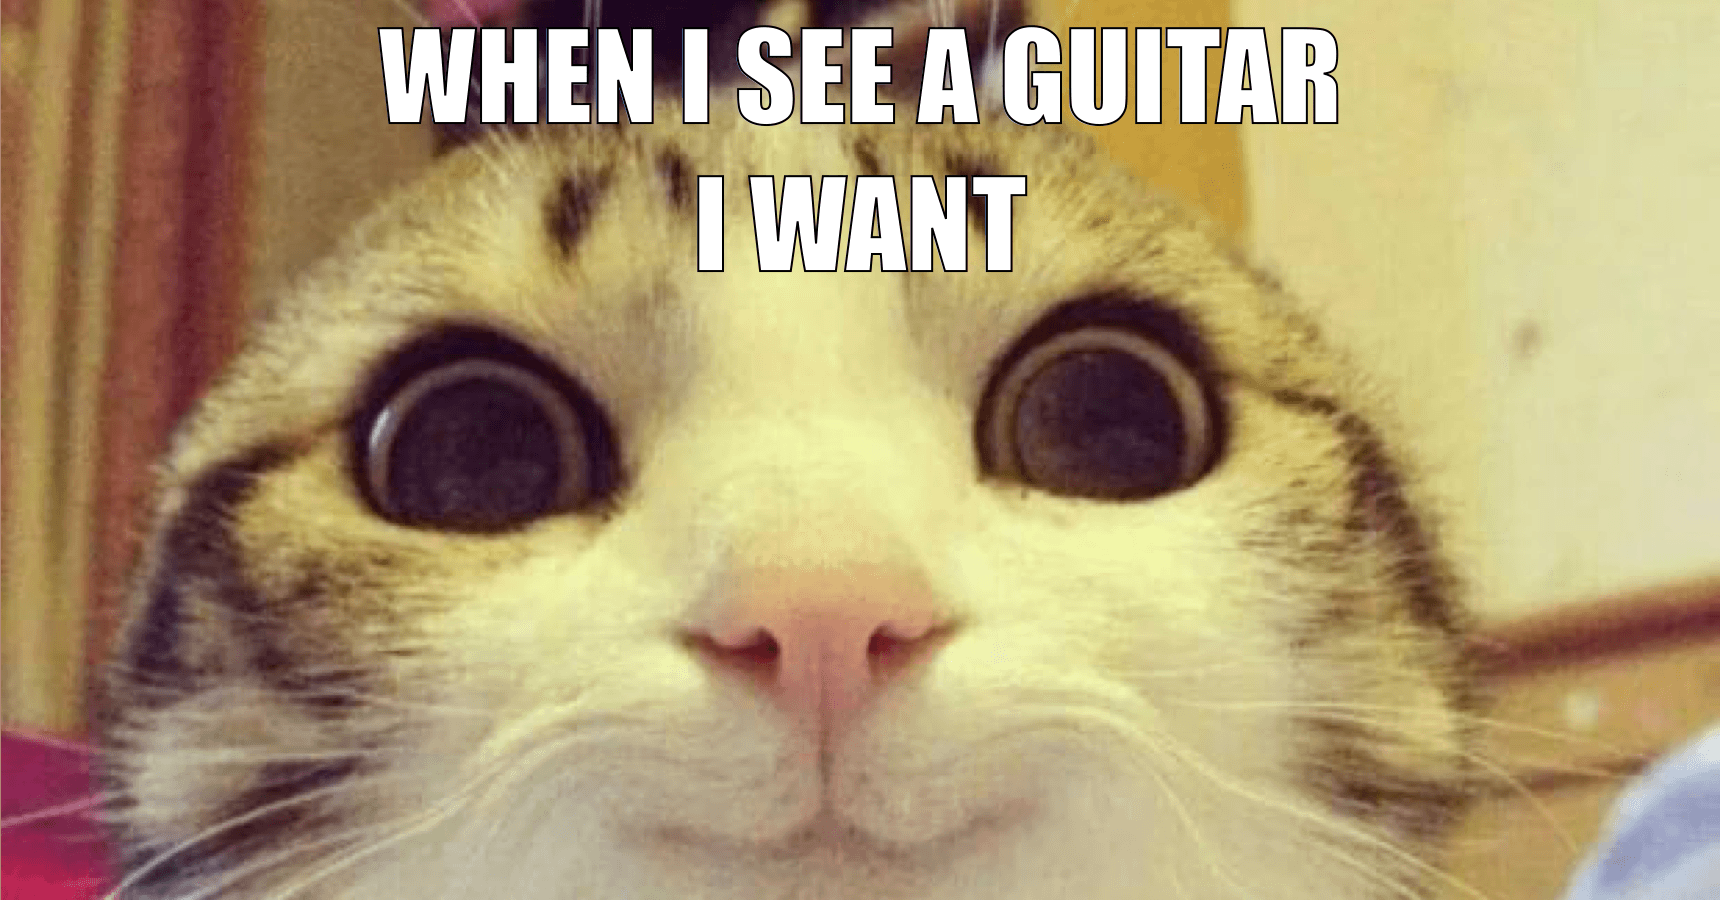 blague chat guitariste gas